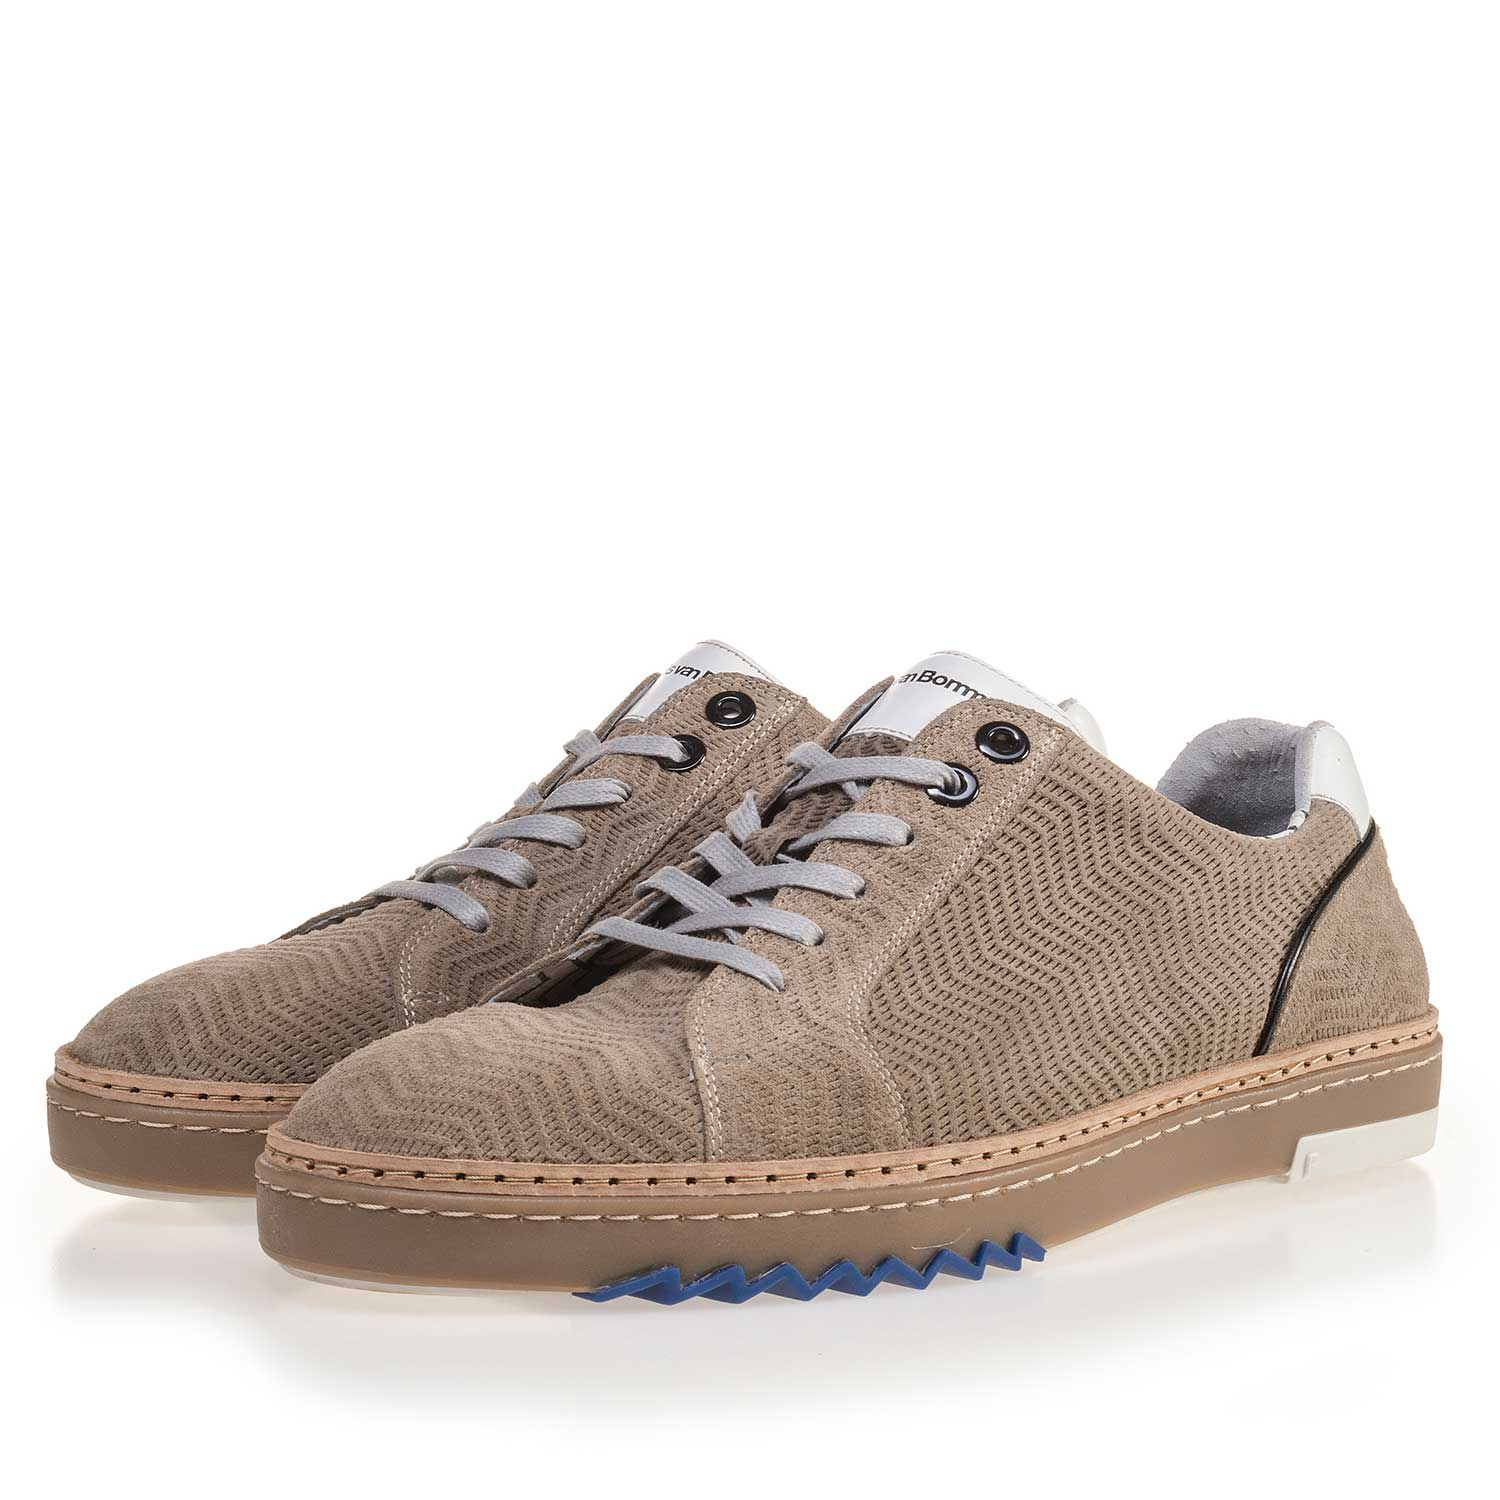 14057/05 - Sand-coloured, leather sneaker with pattern